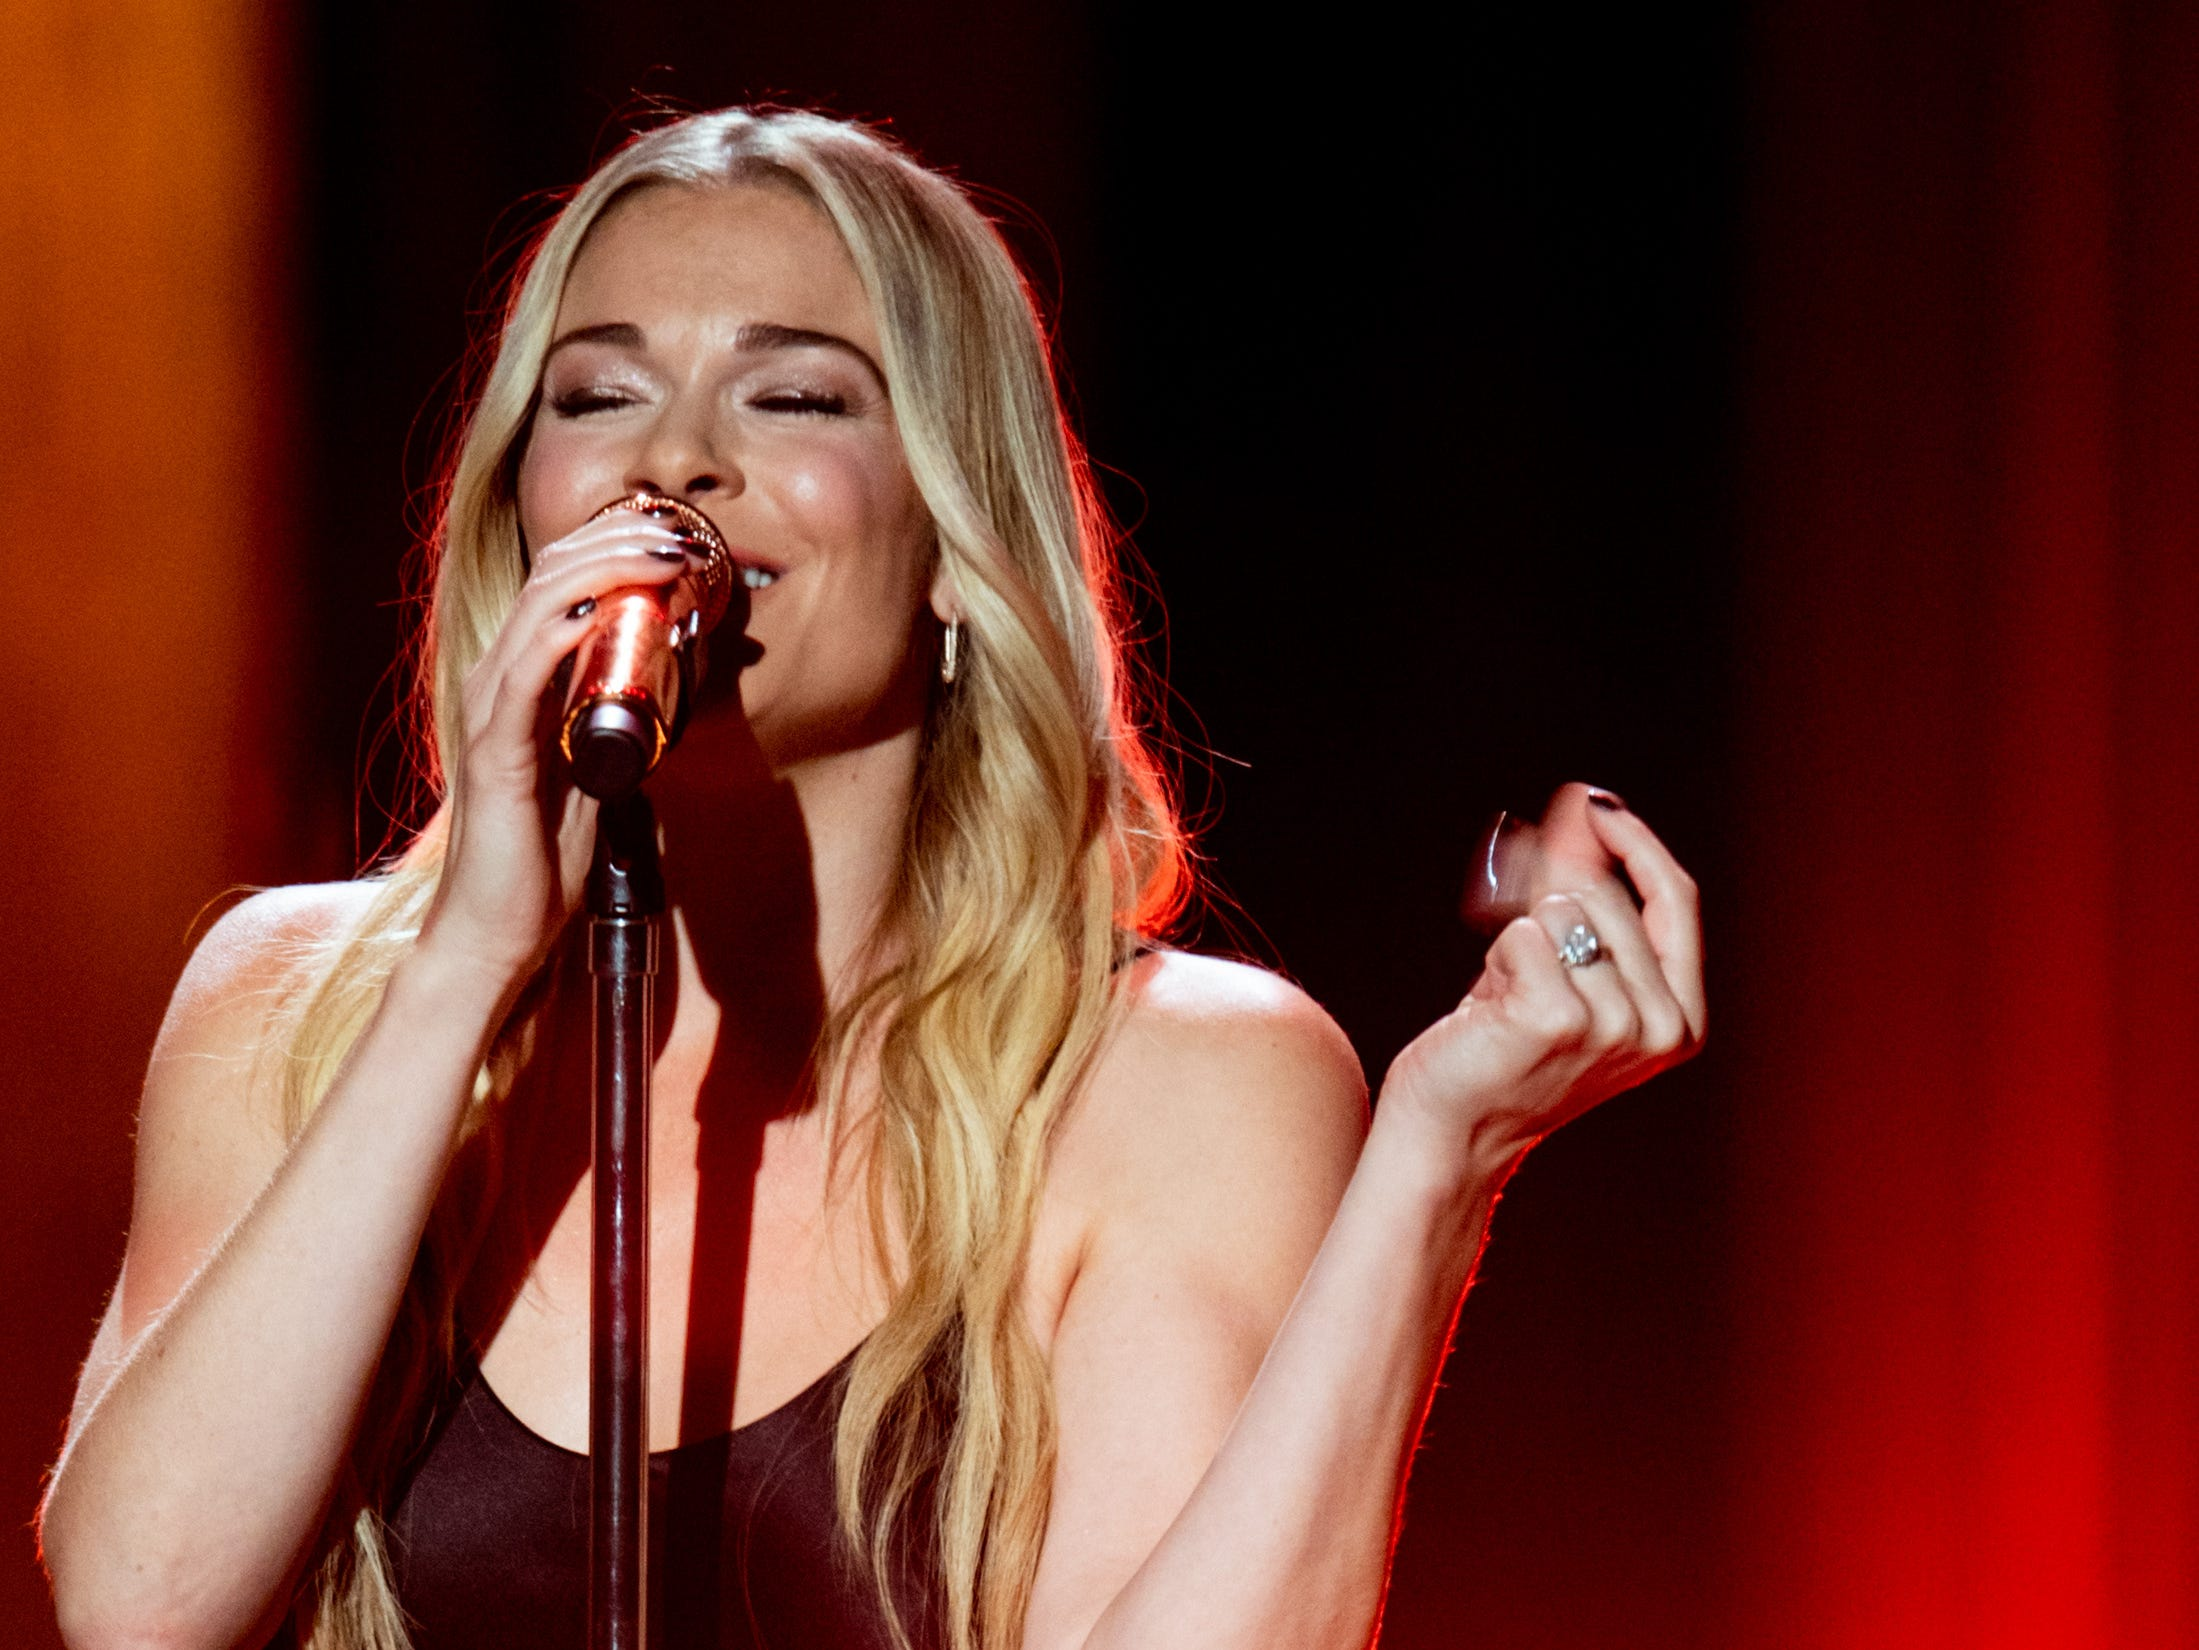 """LeAnn Rimes performs during """"An Opry Salute to Ray Charles"""" at the Grand Ole Opry in Nashville on Oct. 8, 2018."""